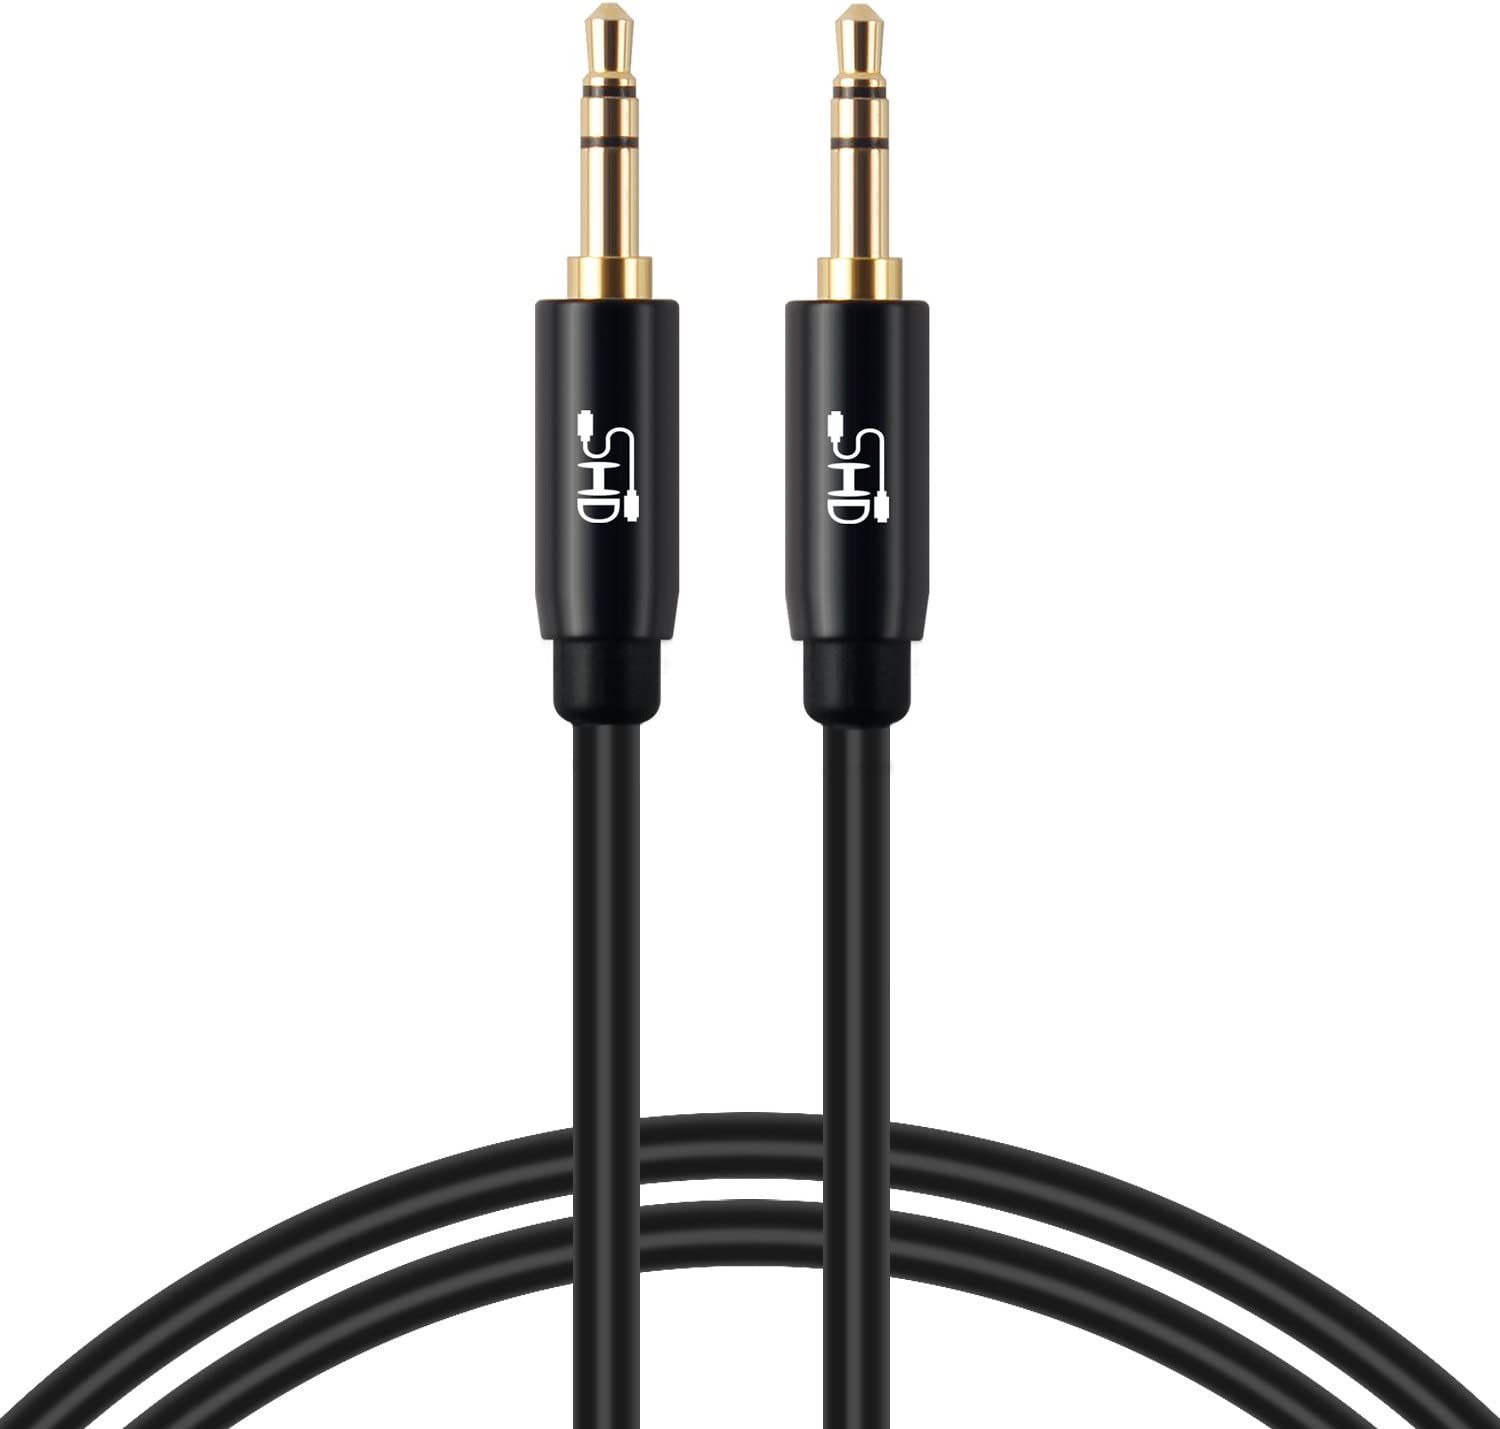 Aux Cable,SHD 3.5mm Audio Cable Aux for Car Auxiliary Audio Stereo Cable 3.5mm Cord Premium Sound Dual Shielded with Gold Plated Connectors-6Feet